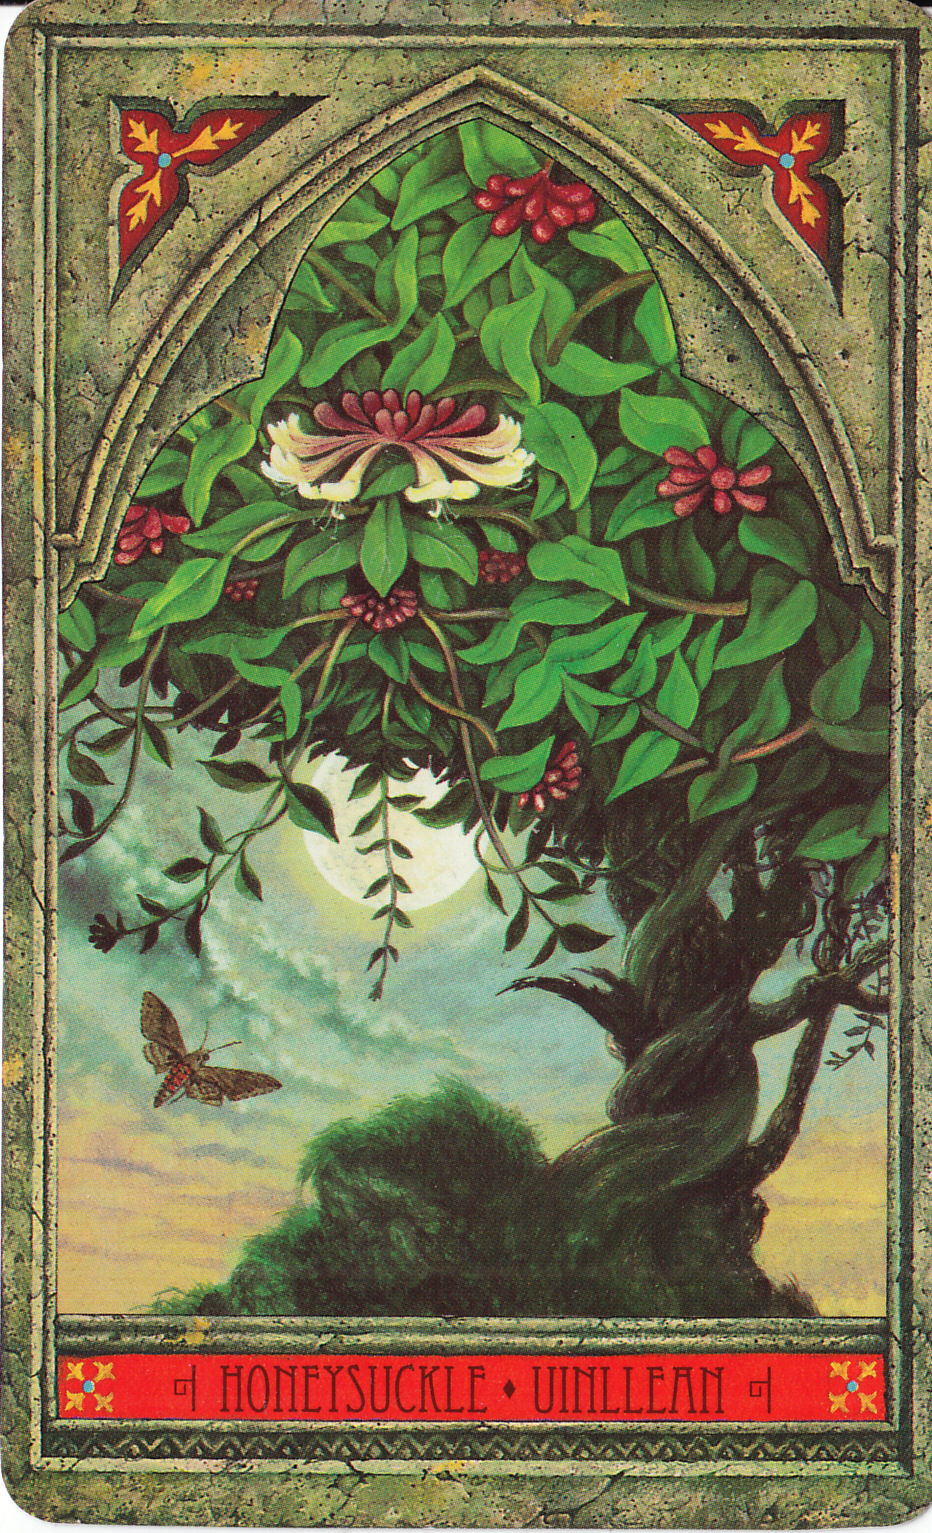 Rowan Tarot December 2012: Rowan Tarot: Green Man Tree Oracle: Honeysuckle